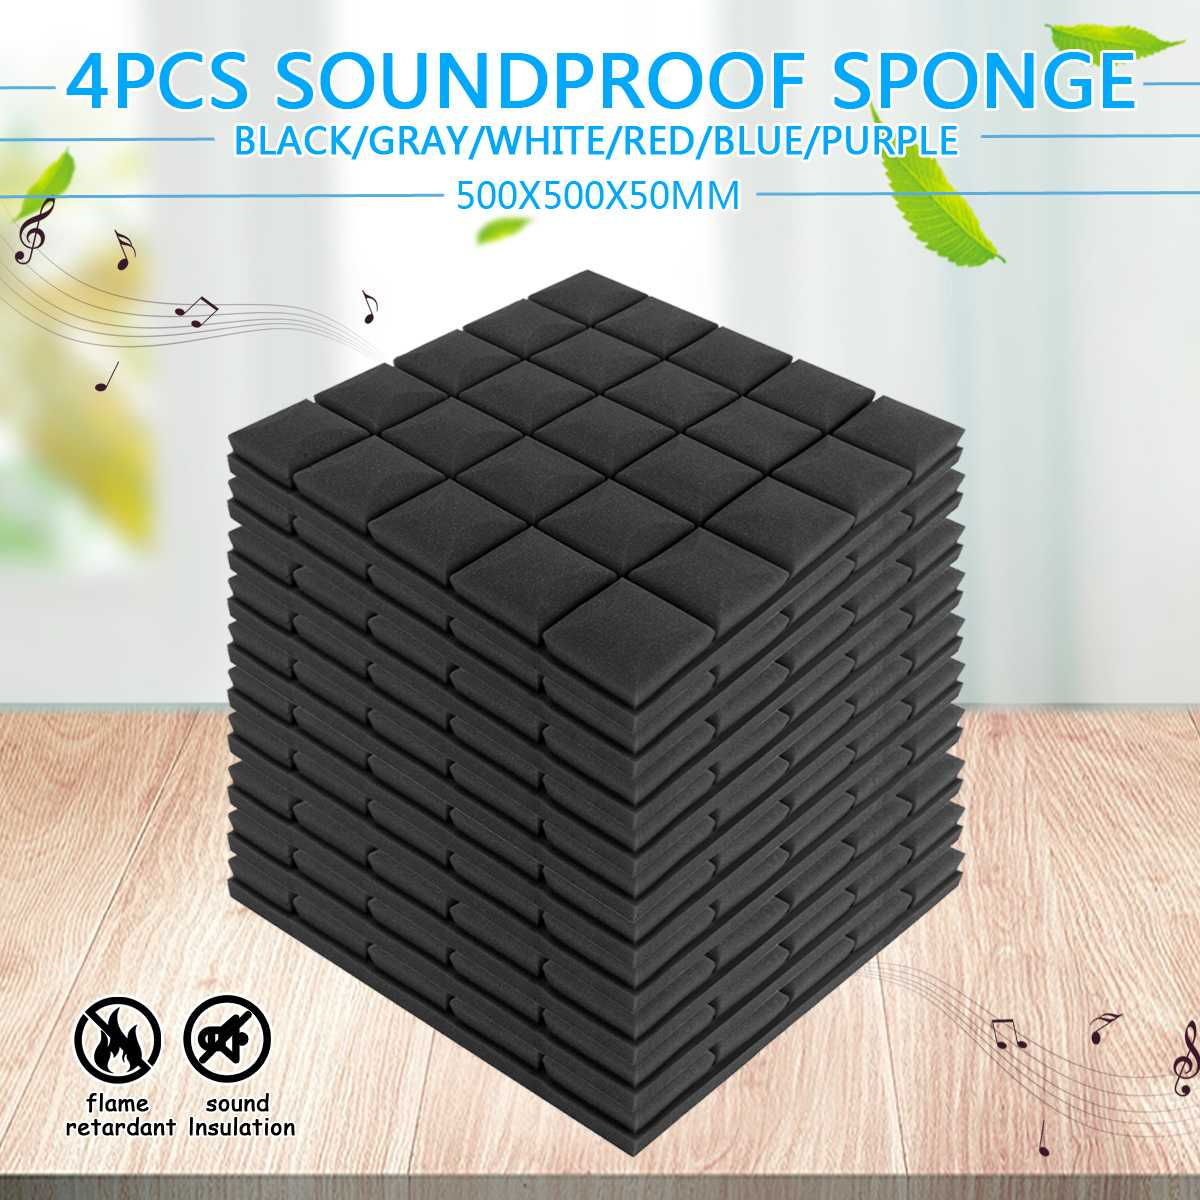 50x50x5cm Soundproof Foam Studio…